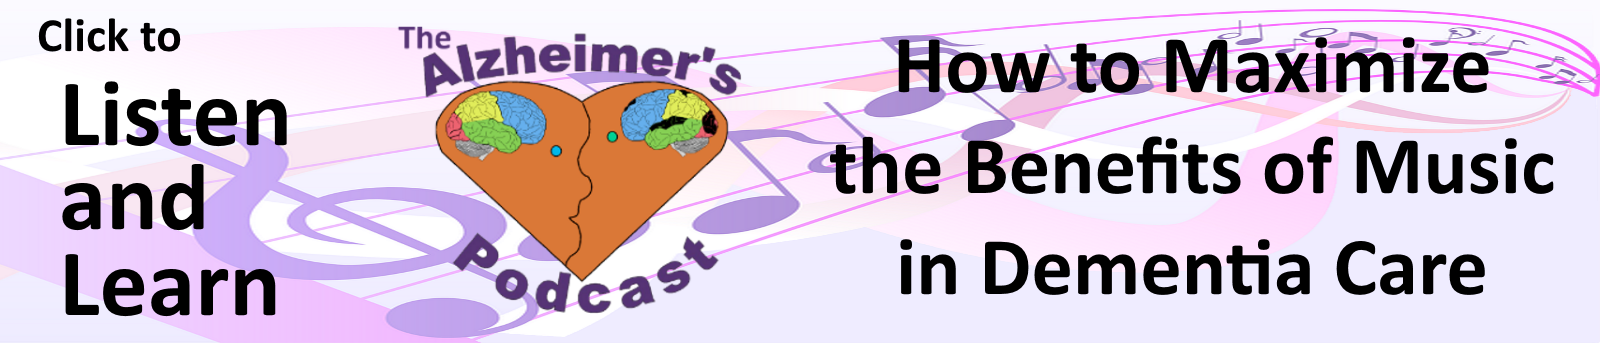 Banner ad for episode 8 of The Alzheimer's Podcast